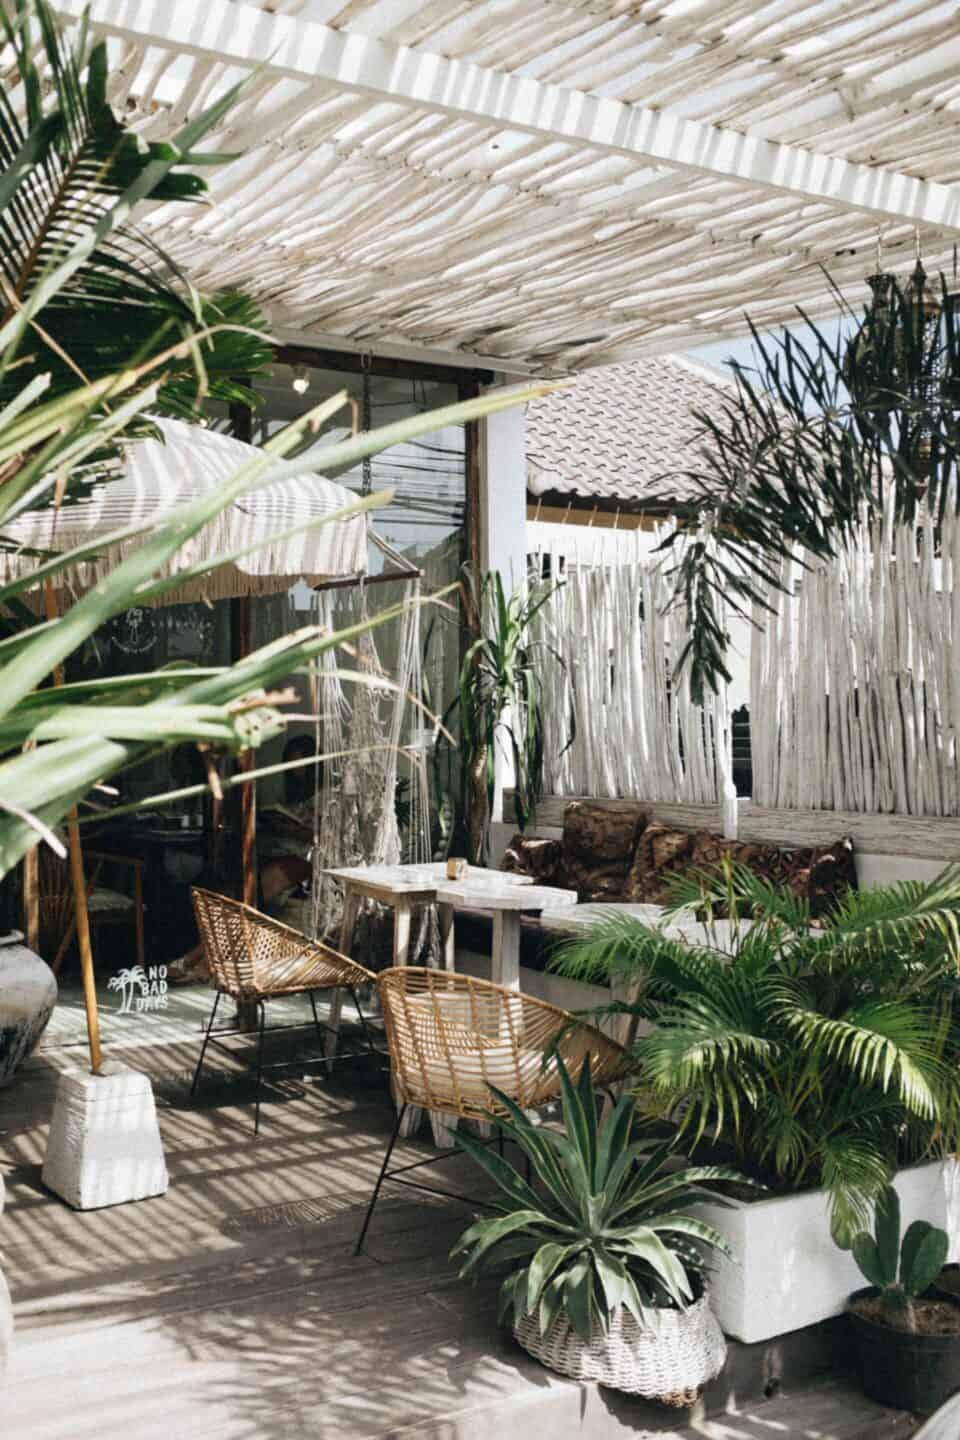 20 Wellness Goals for a Healthier 2020 // house plants, outdoor patio space